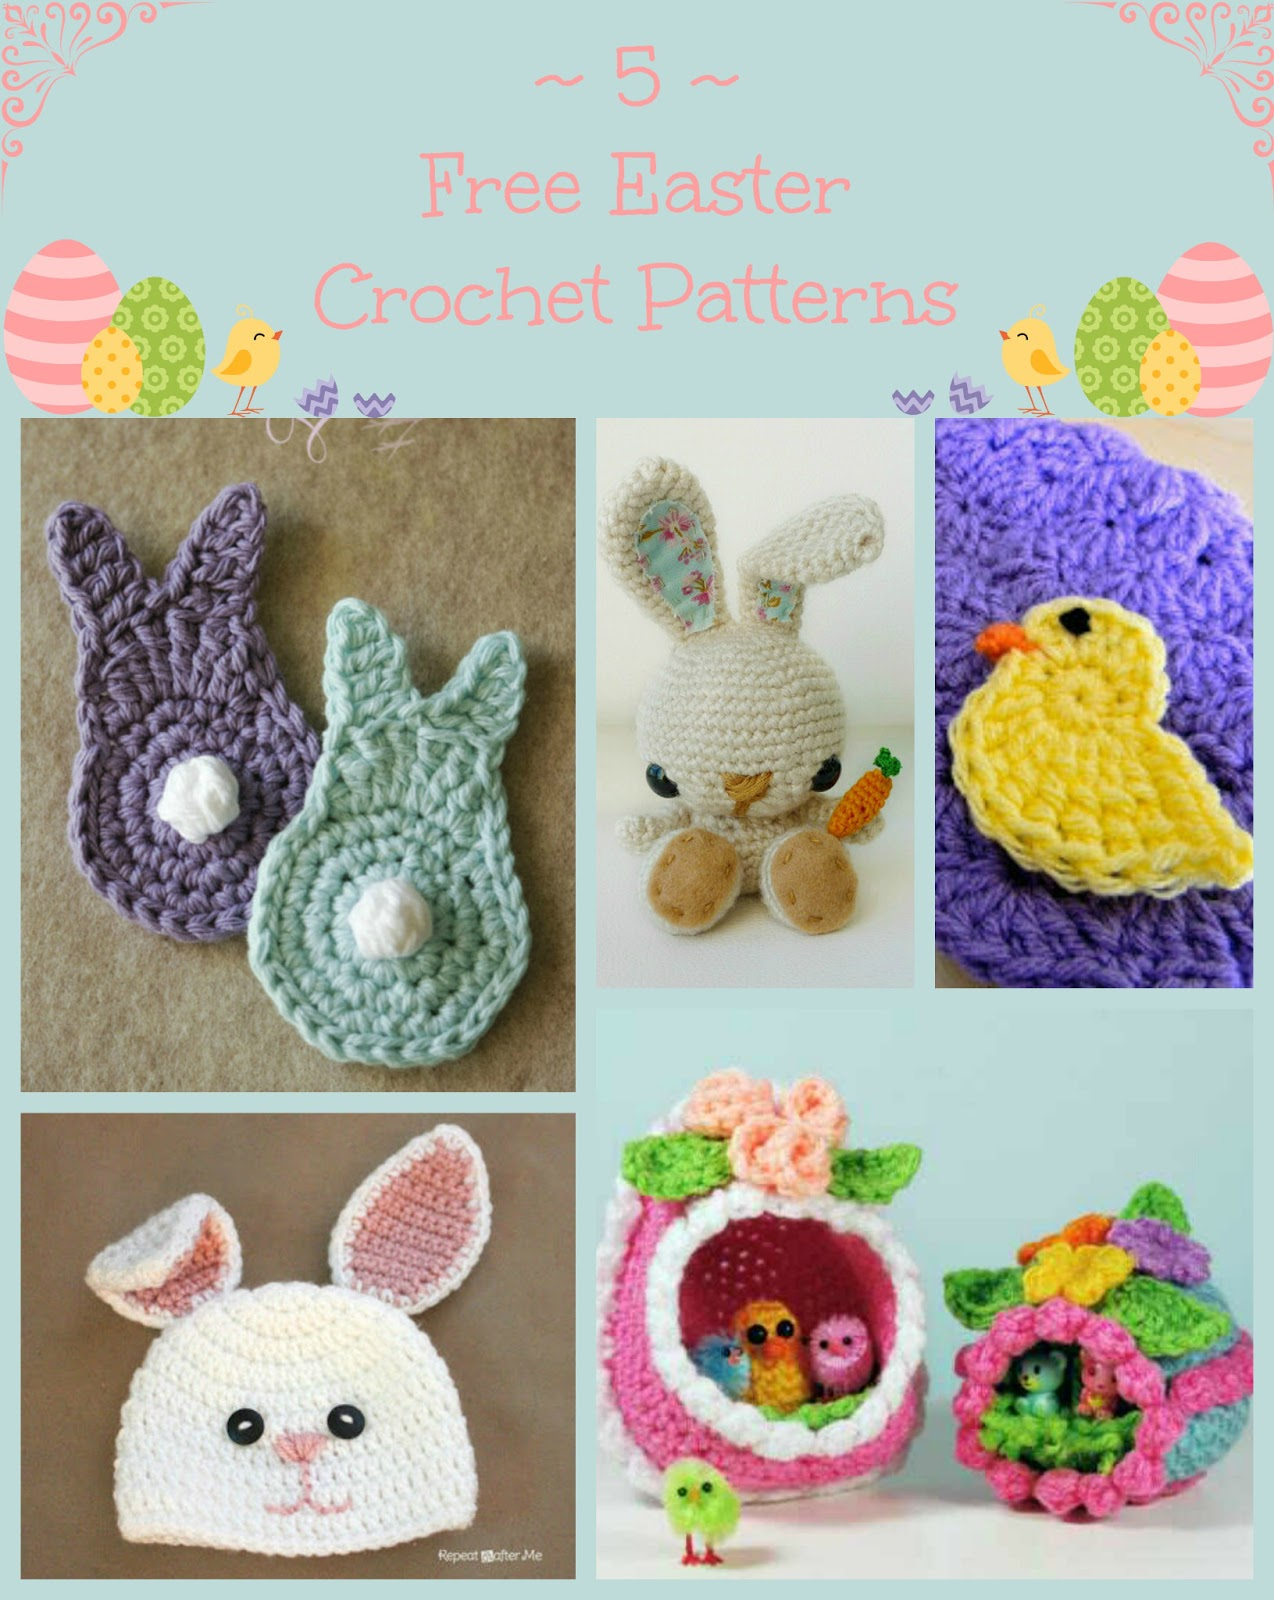 Crochet Patterns Easter : ... Craft, Crochet, Create: 5 Free Easter Inspired Crochet Patterns